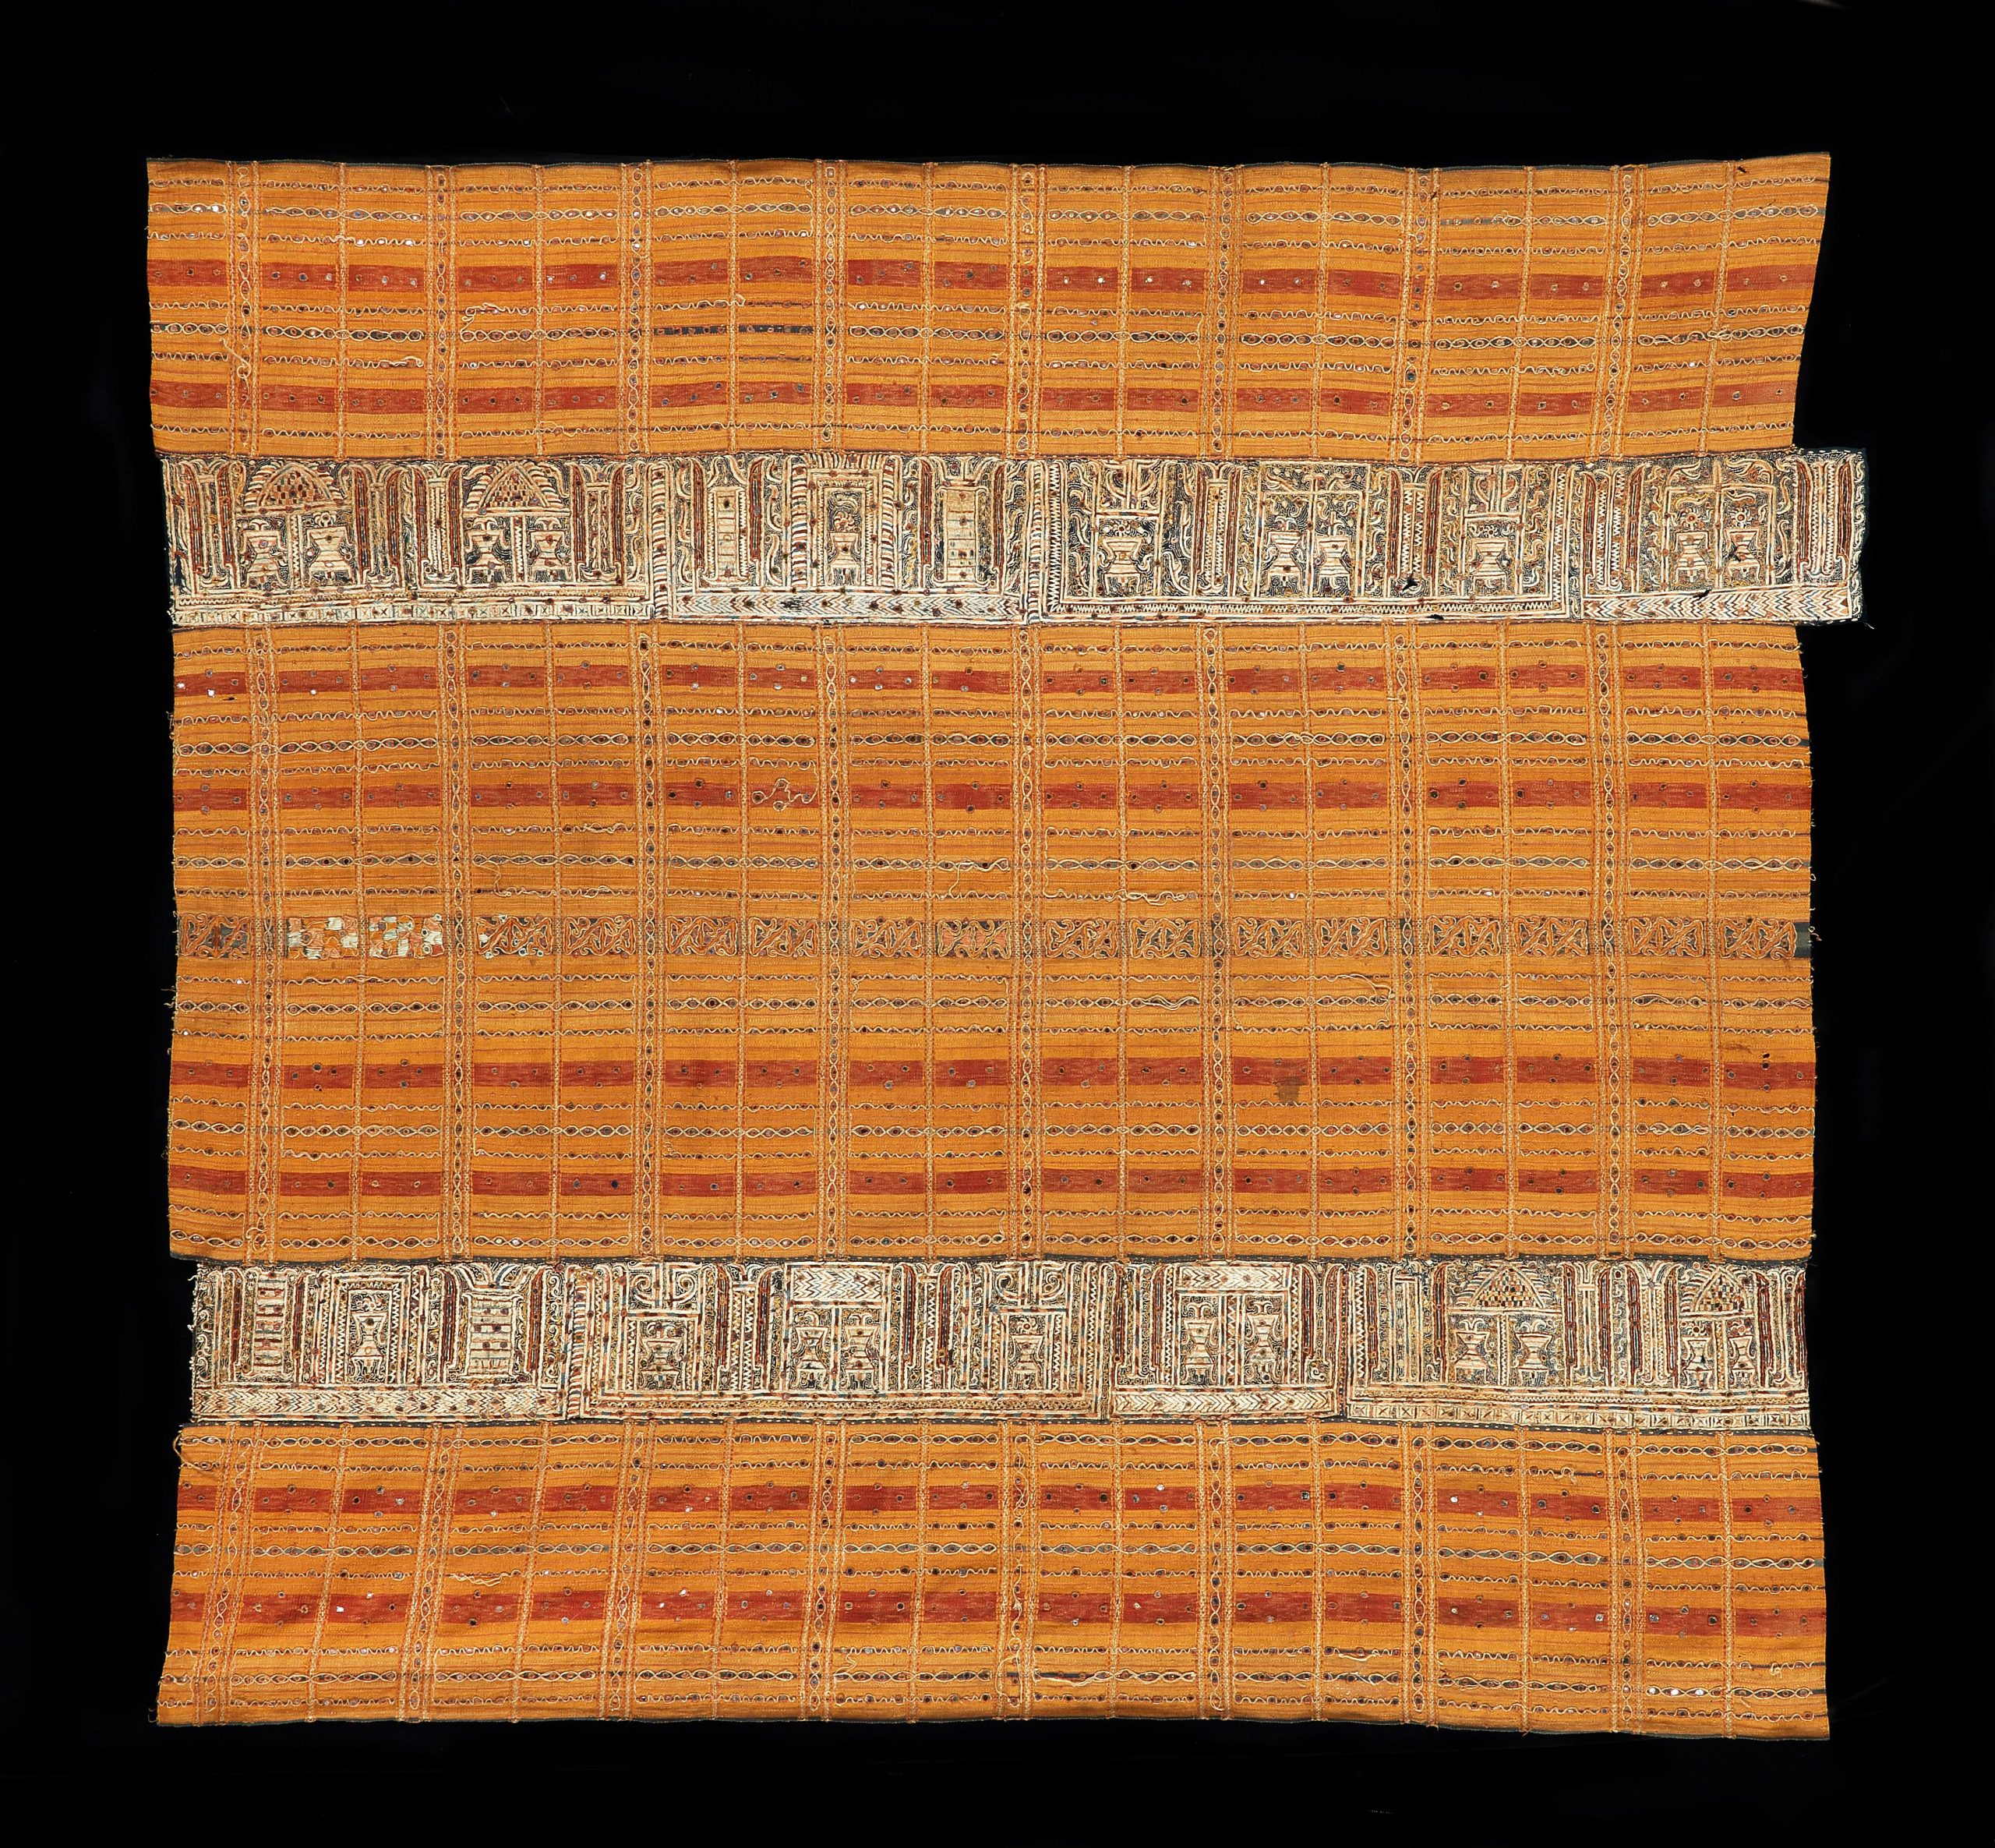 A ceremonial skirt, 'Tapis Kaca Kuning', handspun cotton, gold wrapped thread, silk embroidery, warp ikat, mica (muscovite) sequins, natural dyes, Paminggir people, Lampung, coastal Krui region, mid 19th century, 125cm x 120cm approx.